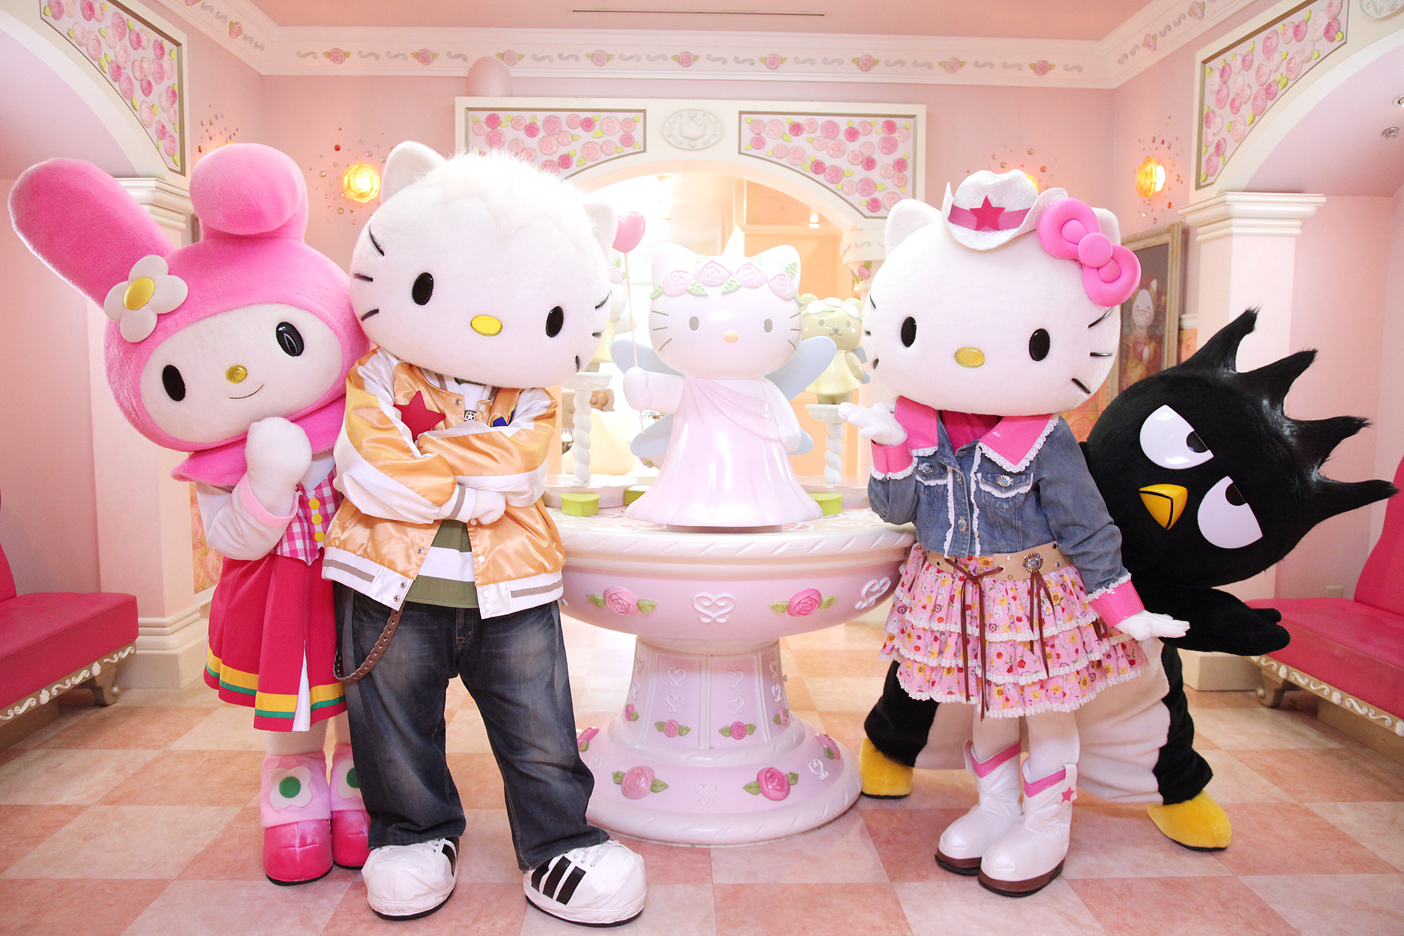 Sanrio-Hello-Kitty-Town-taxisingapore